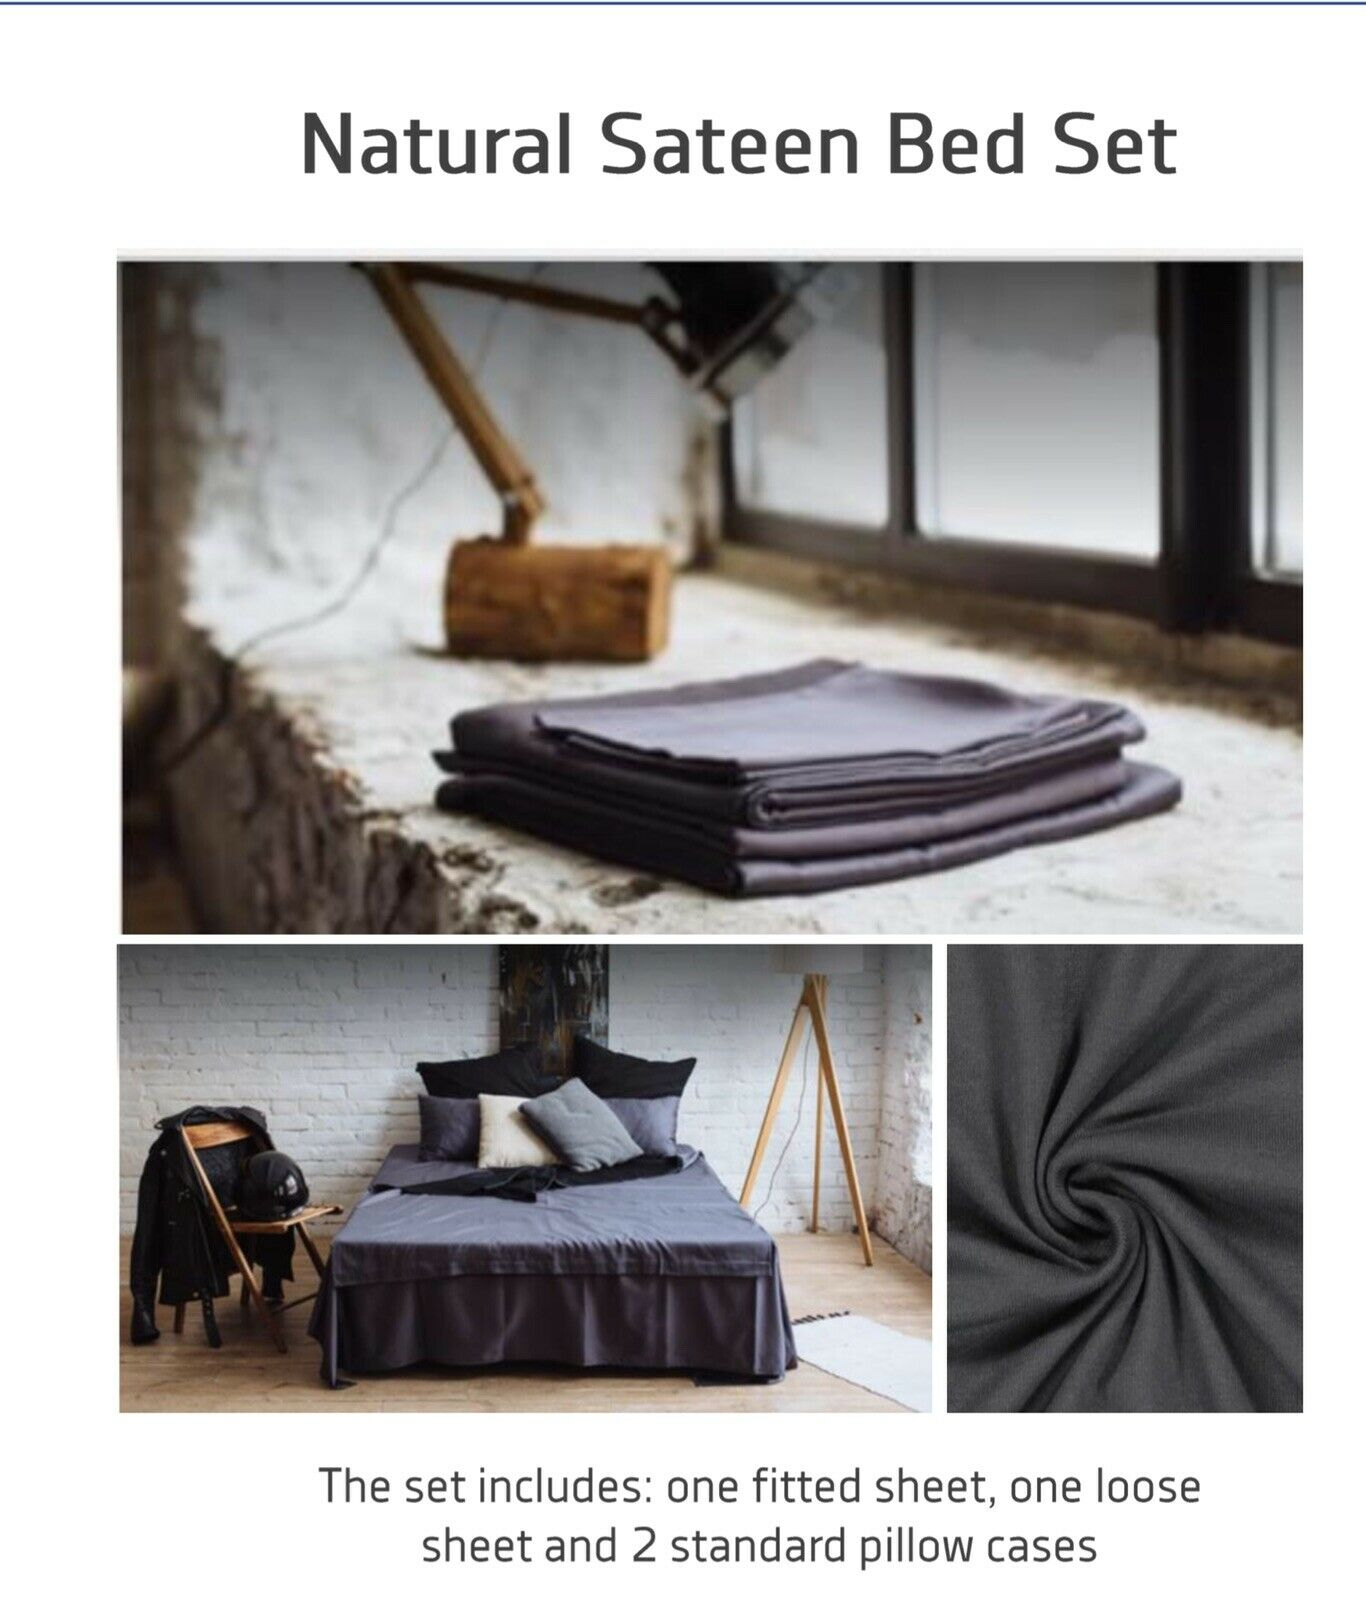 Natural Sateen HandMade Bed Set   TWIN Fitted Flat Sheet 395514   6696